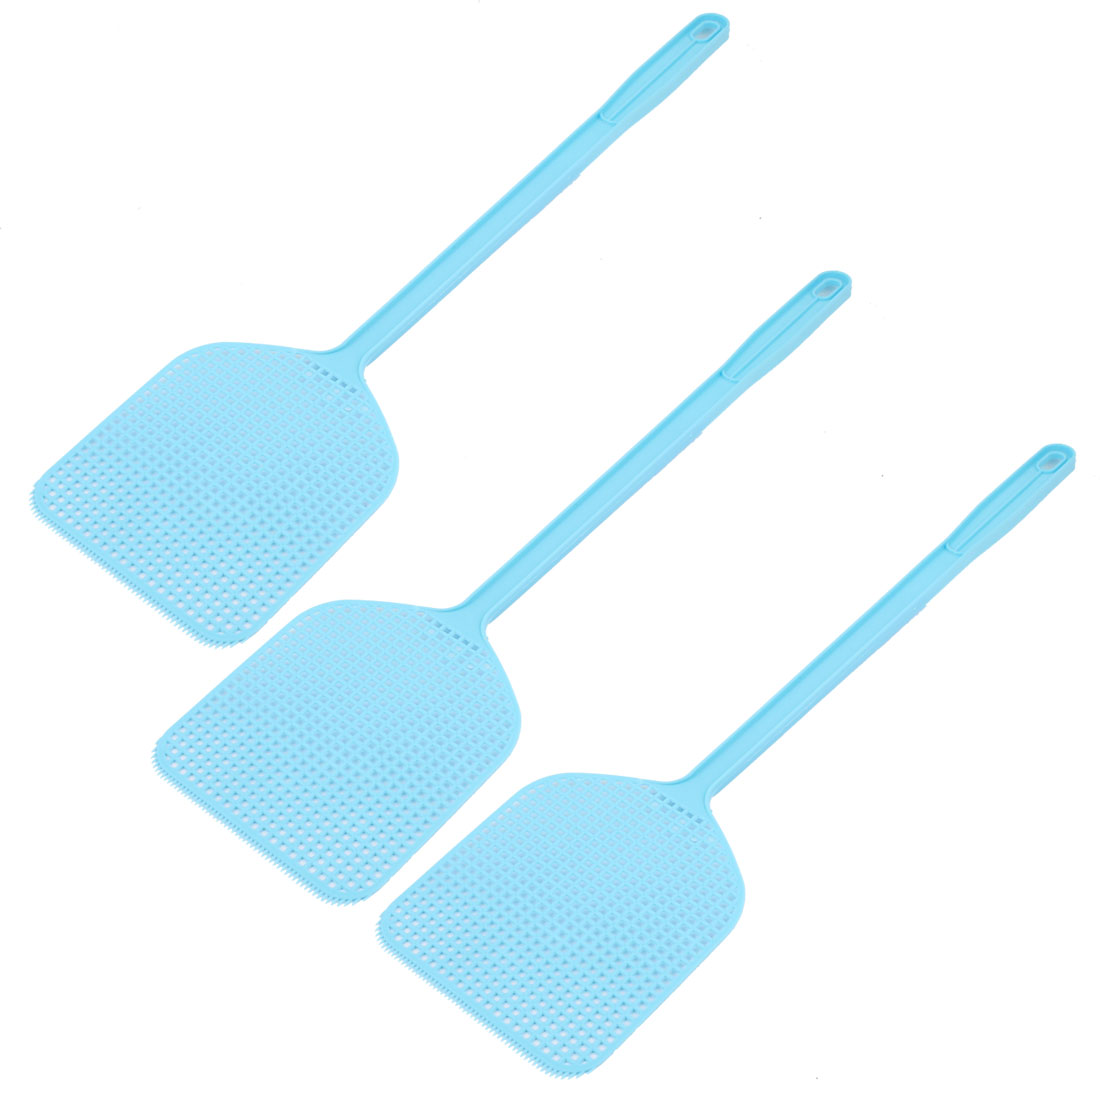 Plastic Novelty Hand Held Mosquito Fly Bug Pest Swatter 44cm Long Blue 3PCS